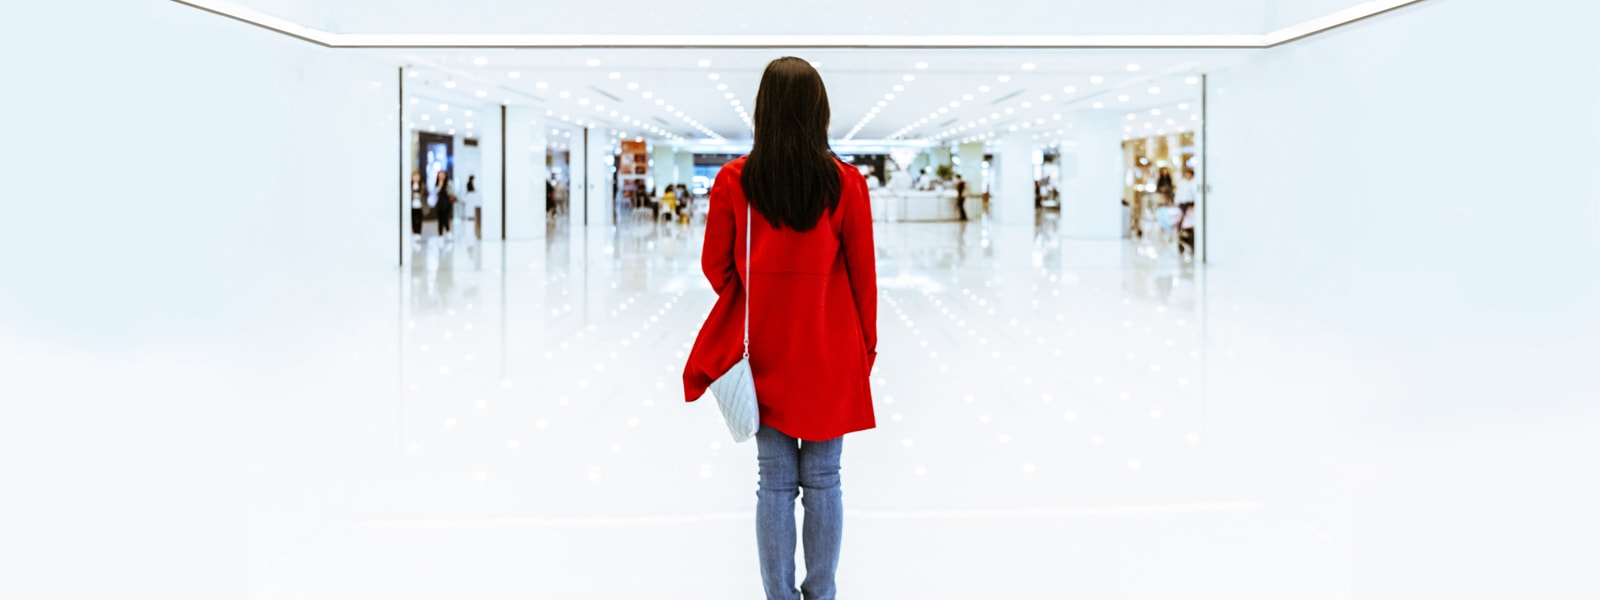 Person in a red coat standing in front of a retail store